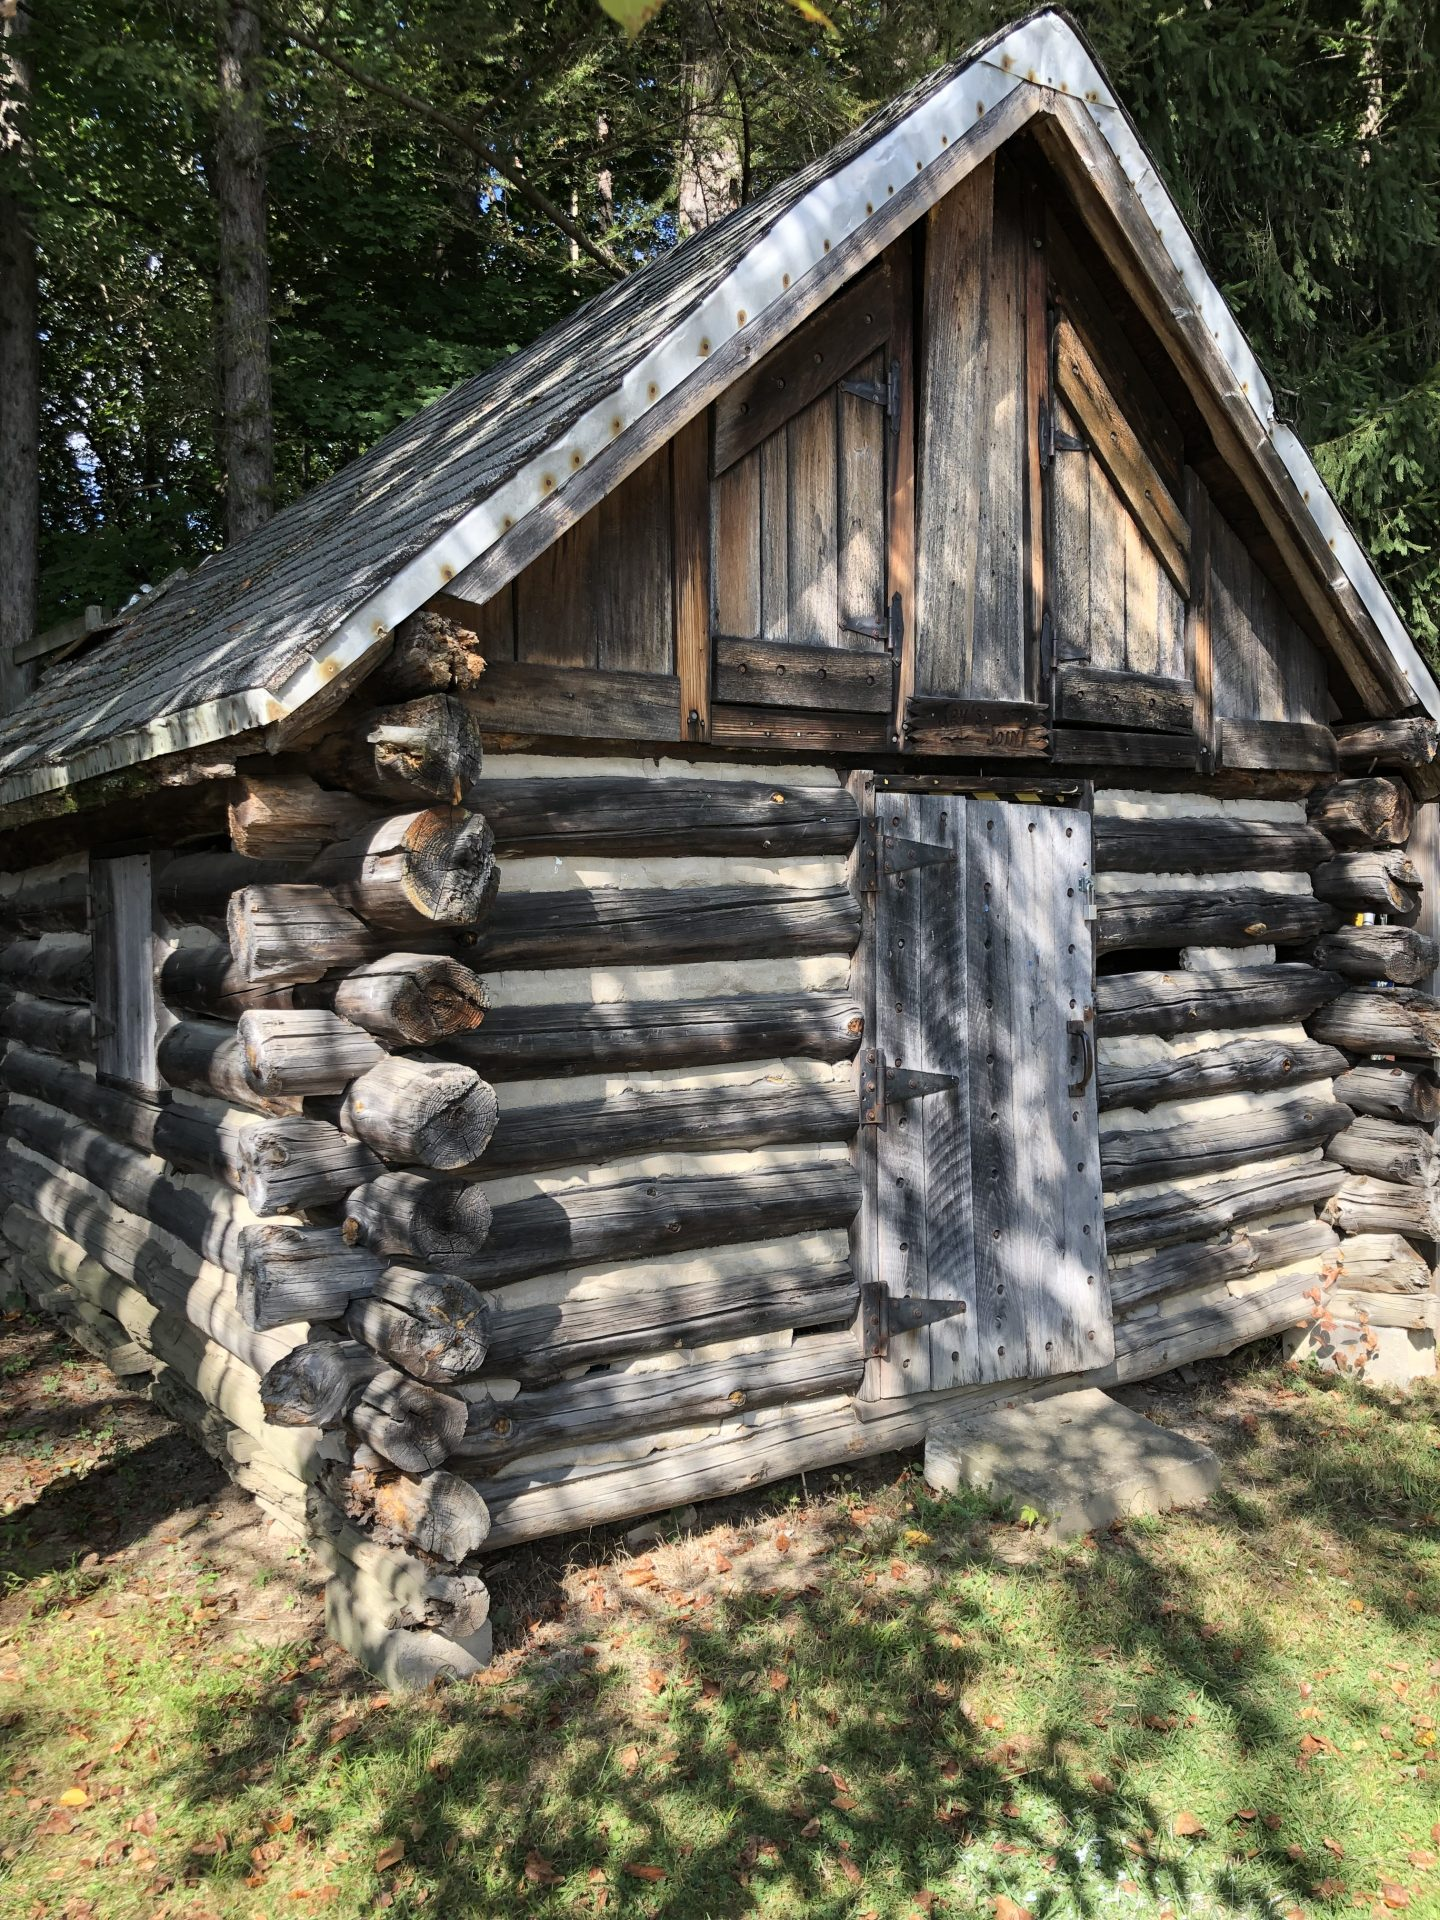 The log cabin pictured here was built in 1976, using tools and methods from 1776 to mark the American Bicentennial